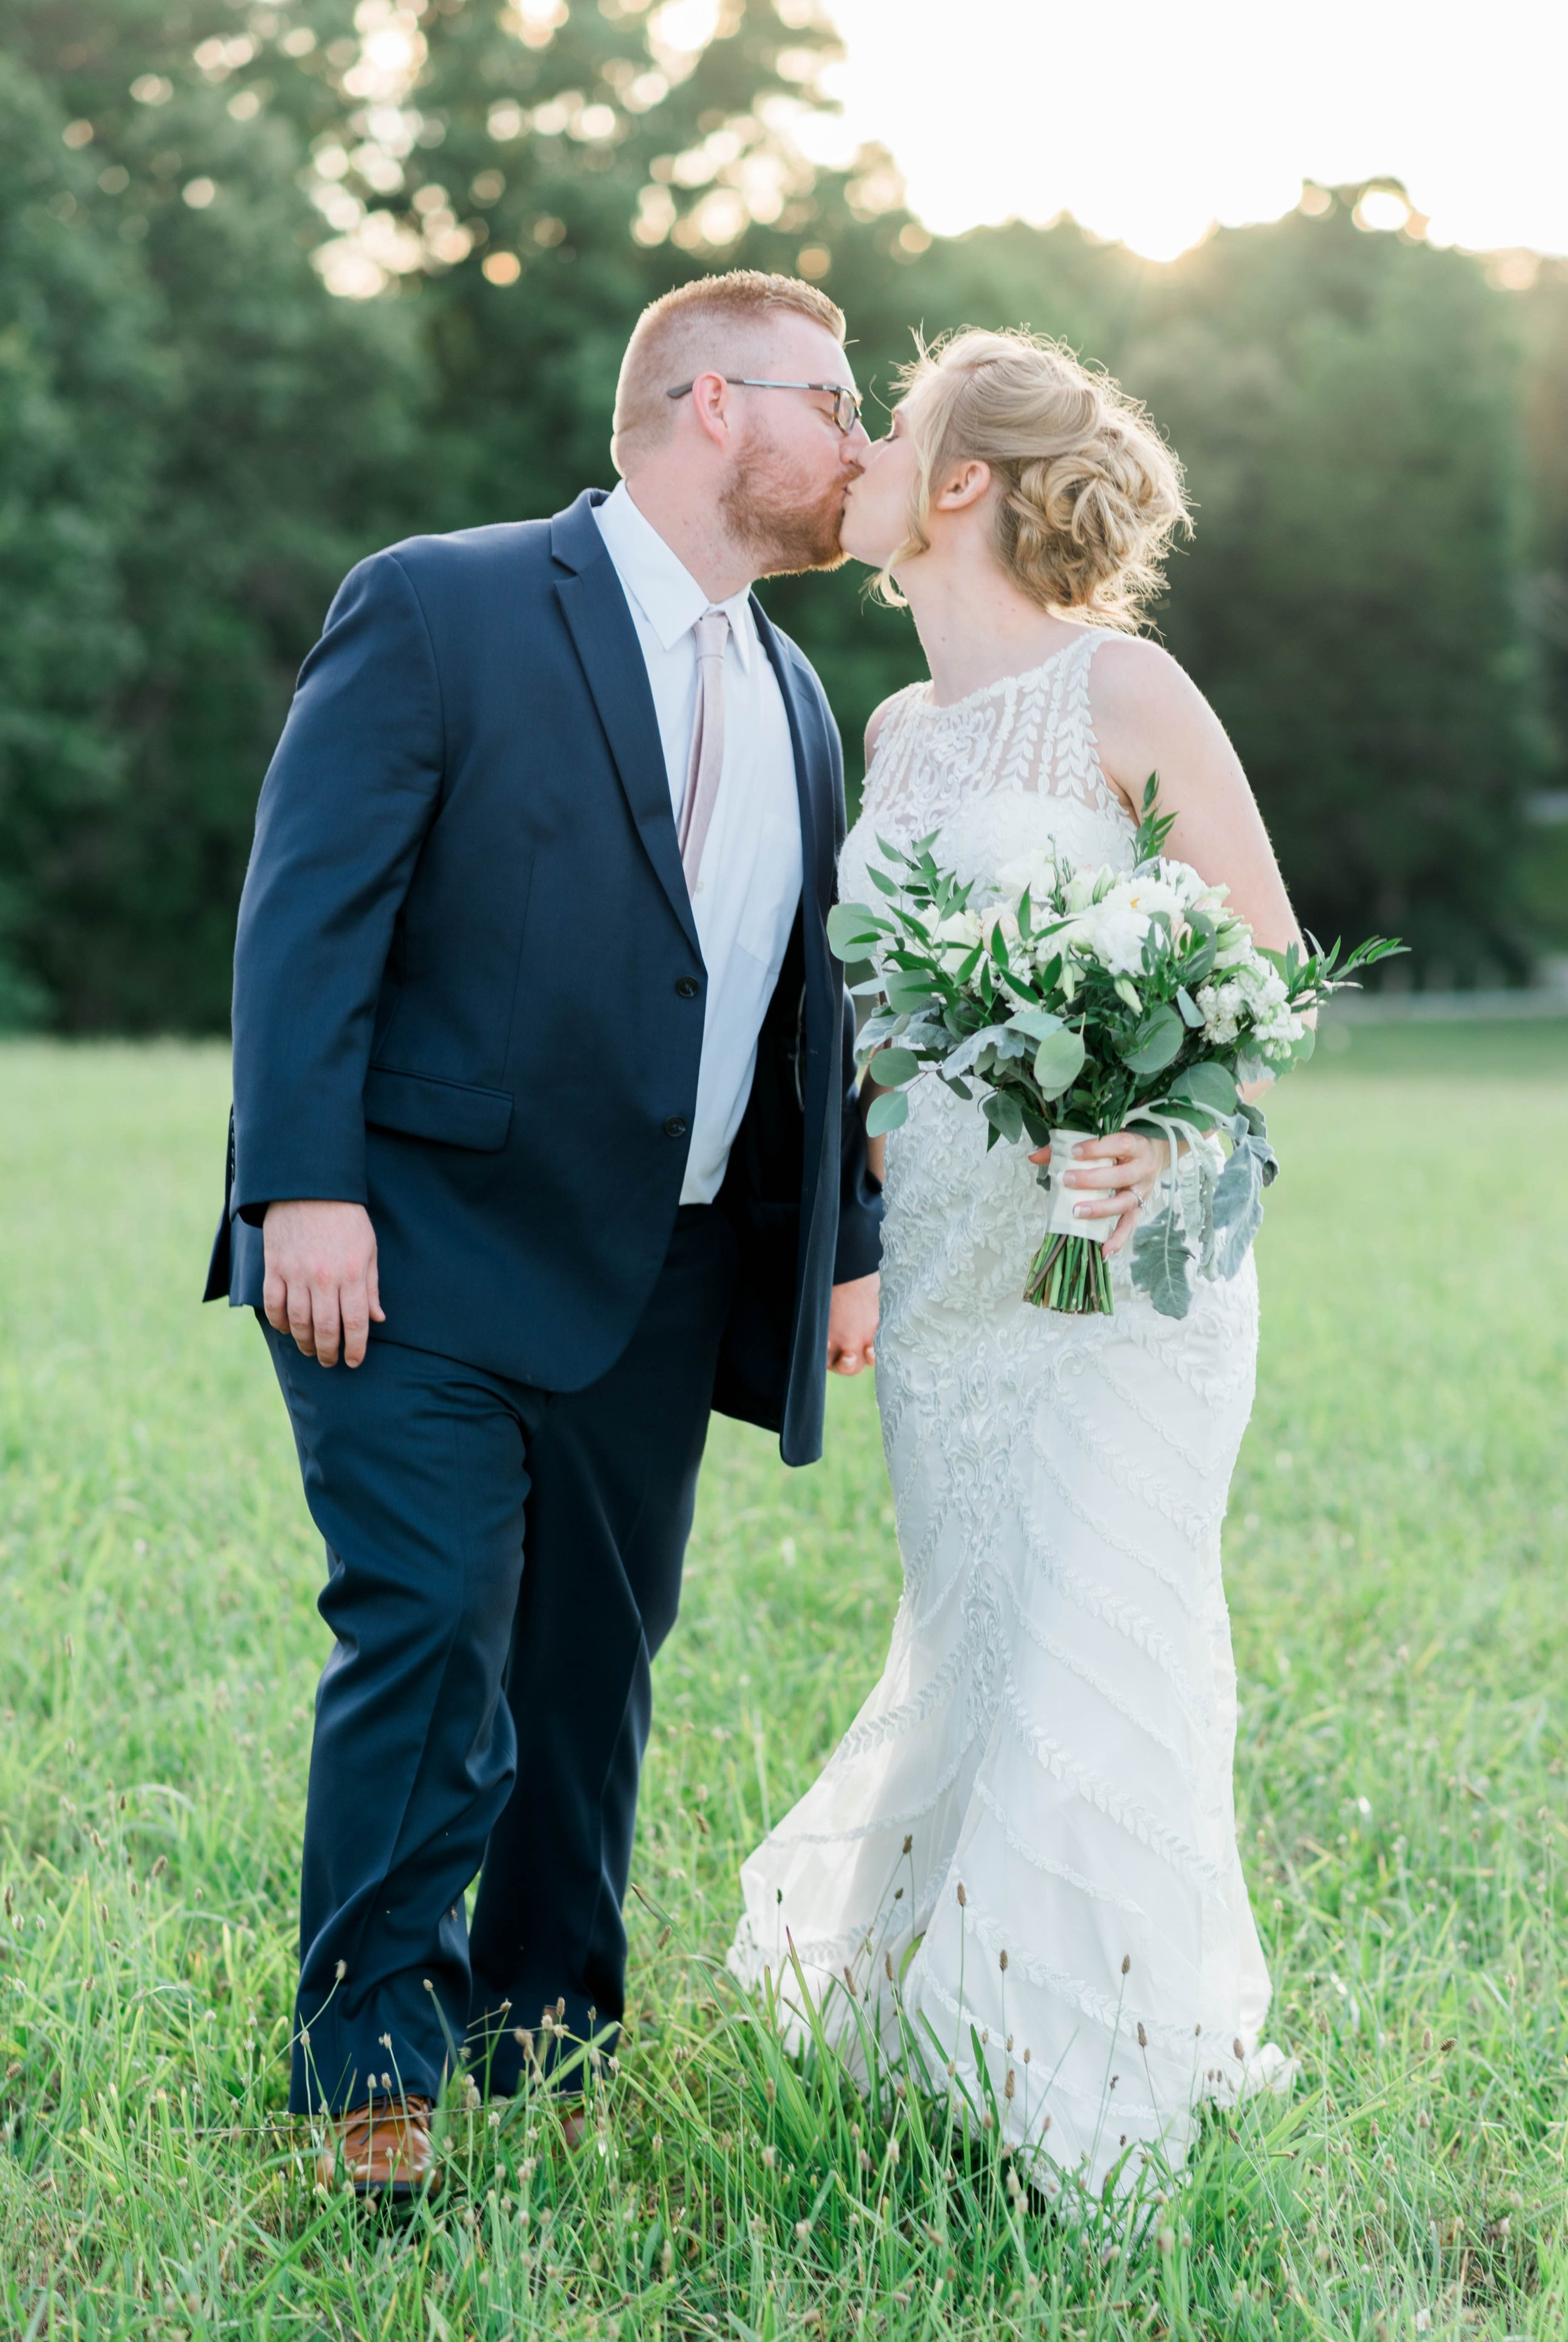 SorellaFarms_VirginiaWeddingPhotographer_BarnWedding_Lynchburgweddingphotographer_DanielleTyler 27.jpg